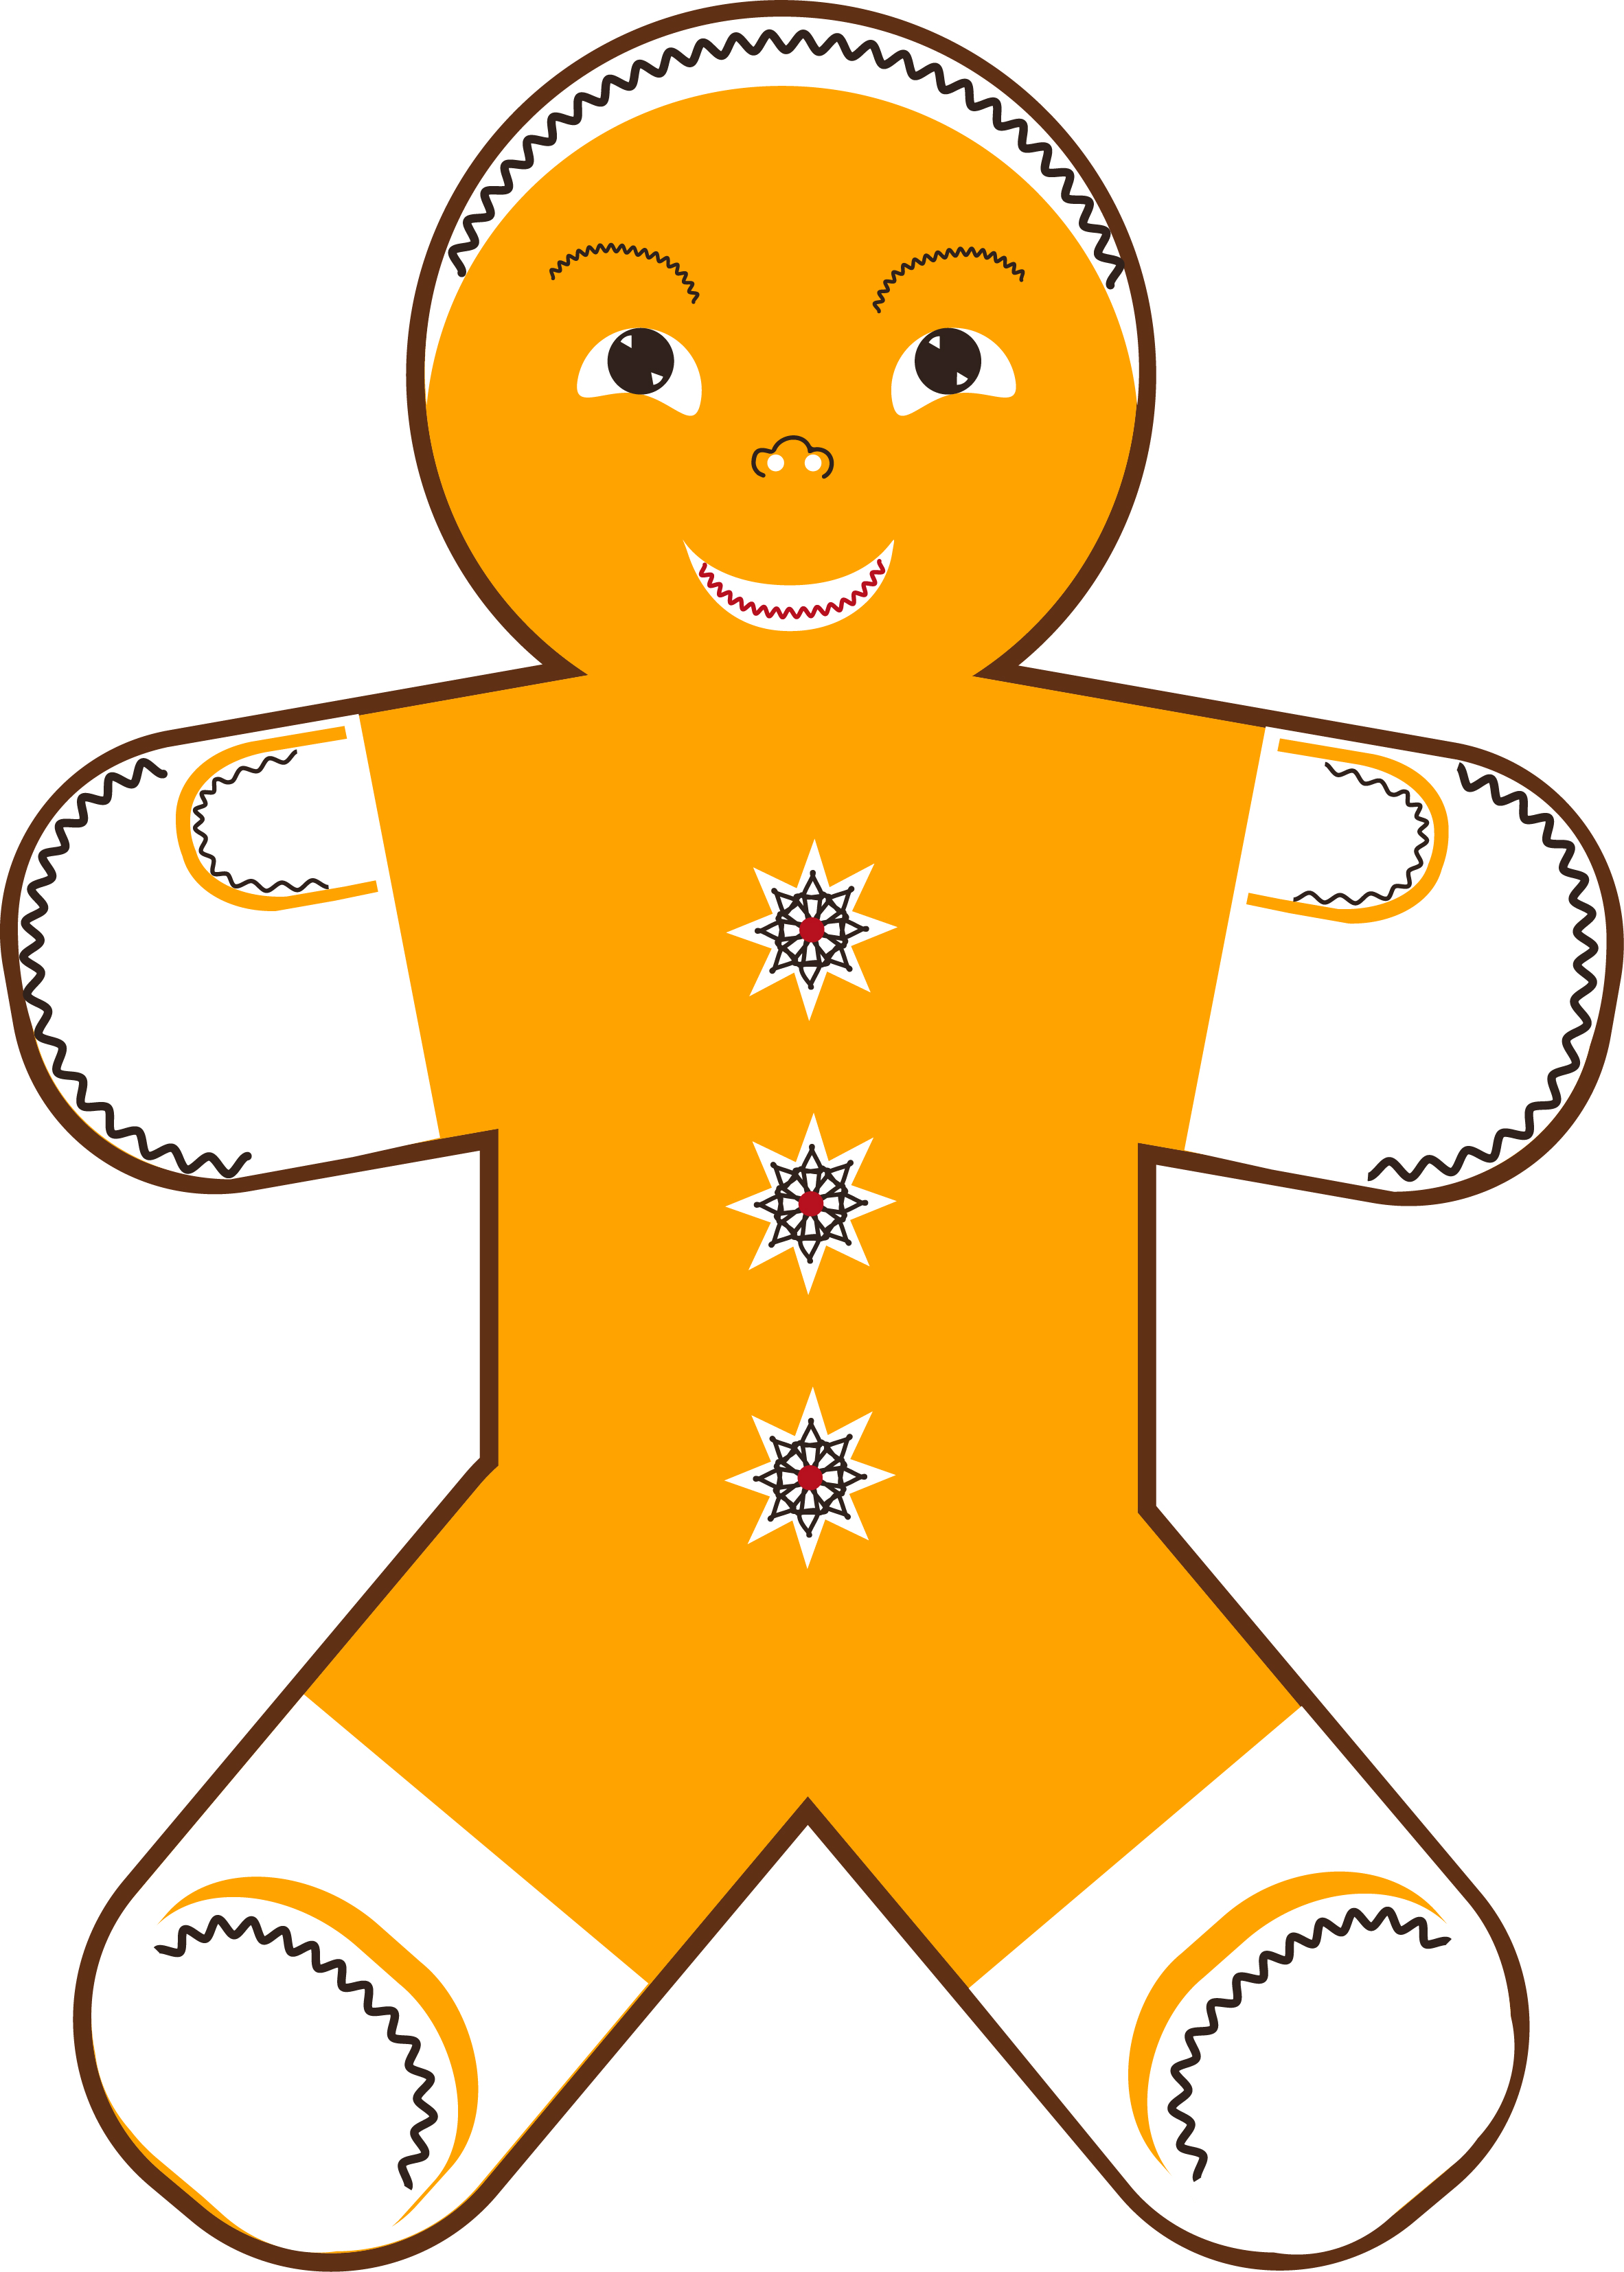 New Year Gingerbread Man example image 5